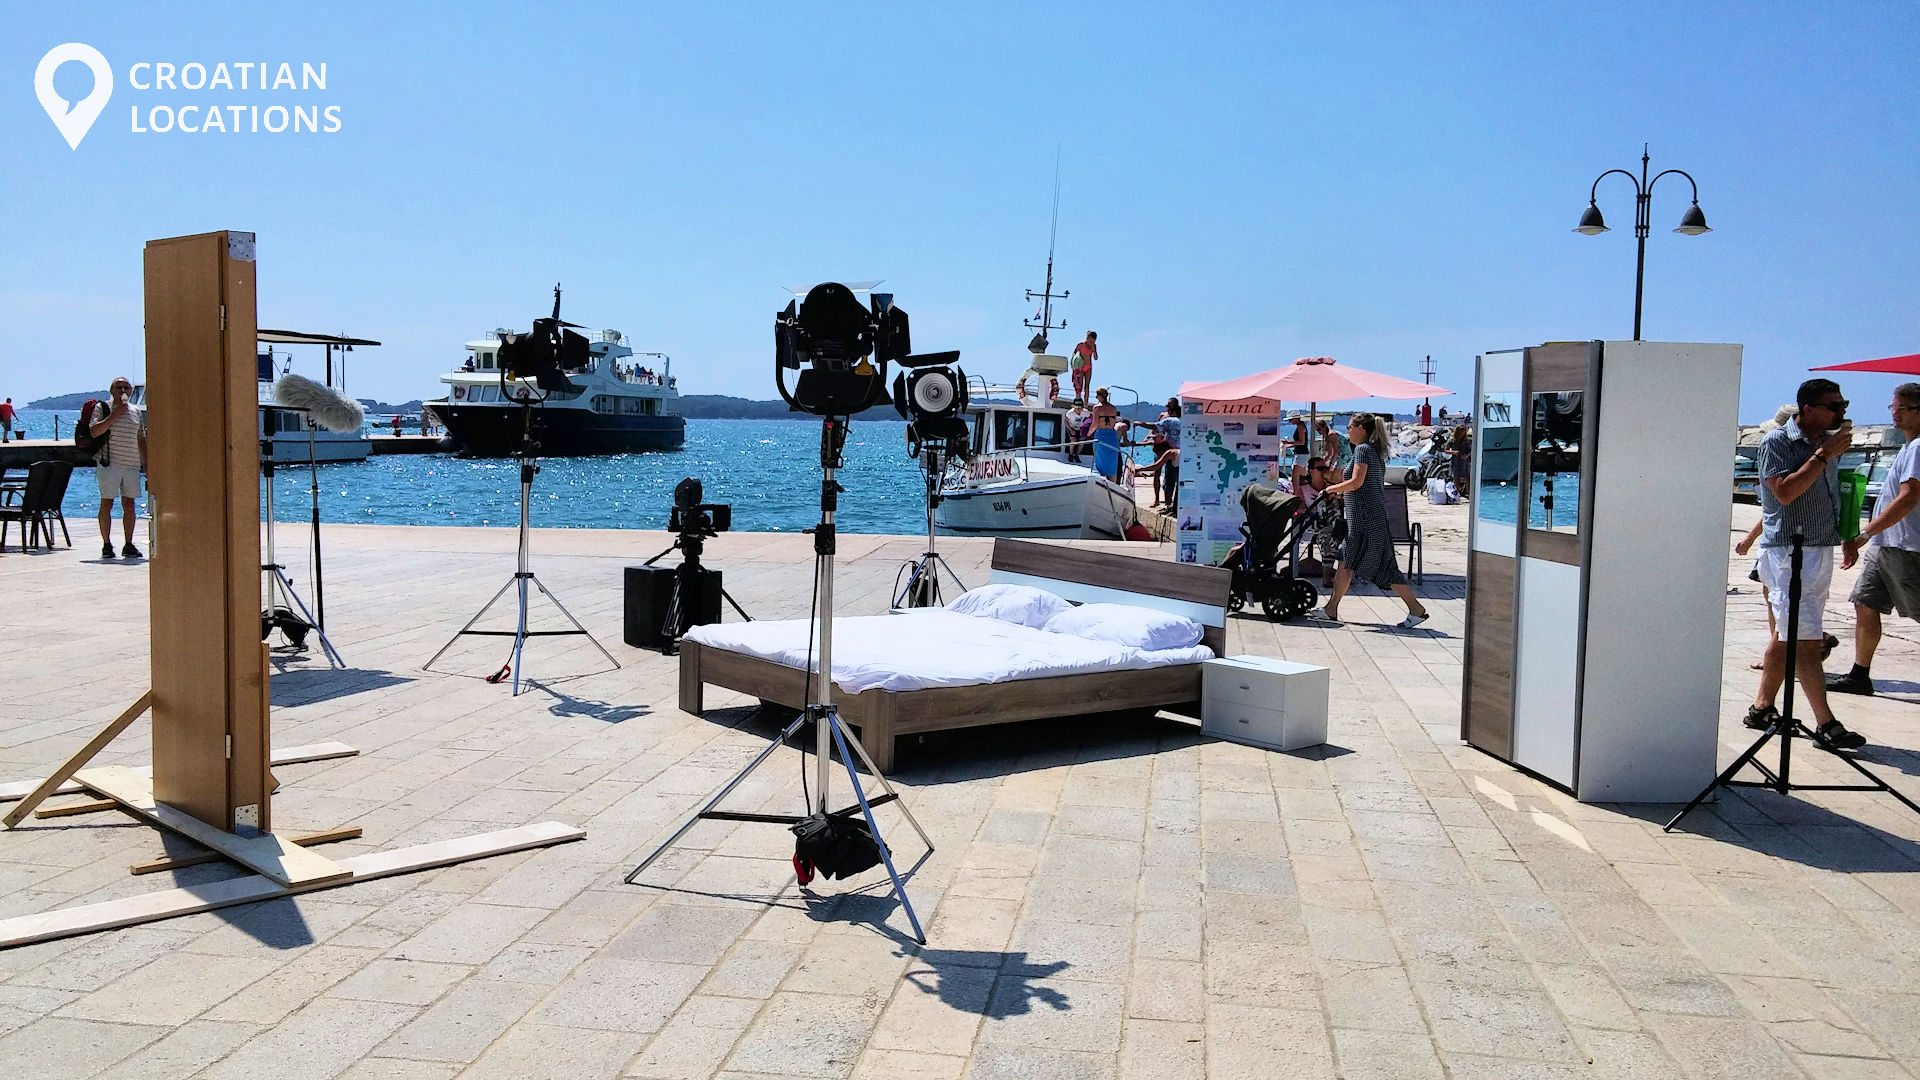 Filming a feature film on one of locations in Croatia